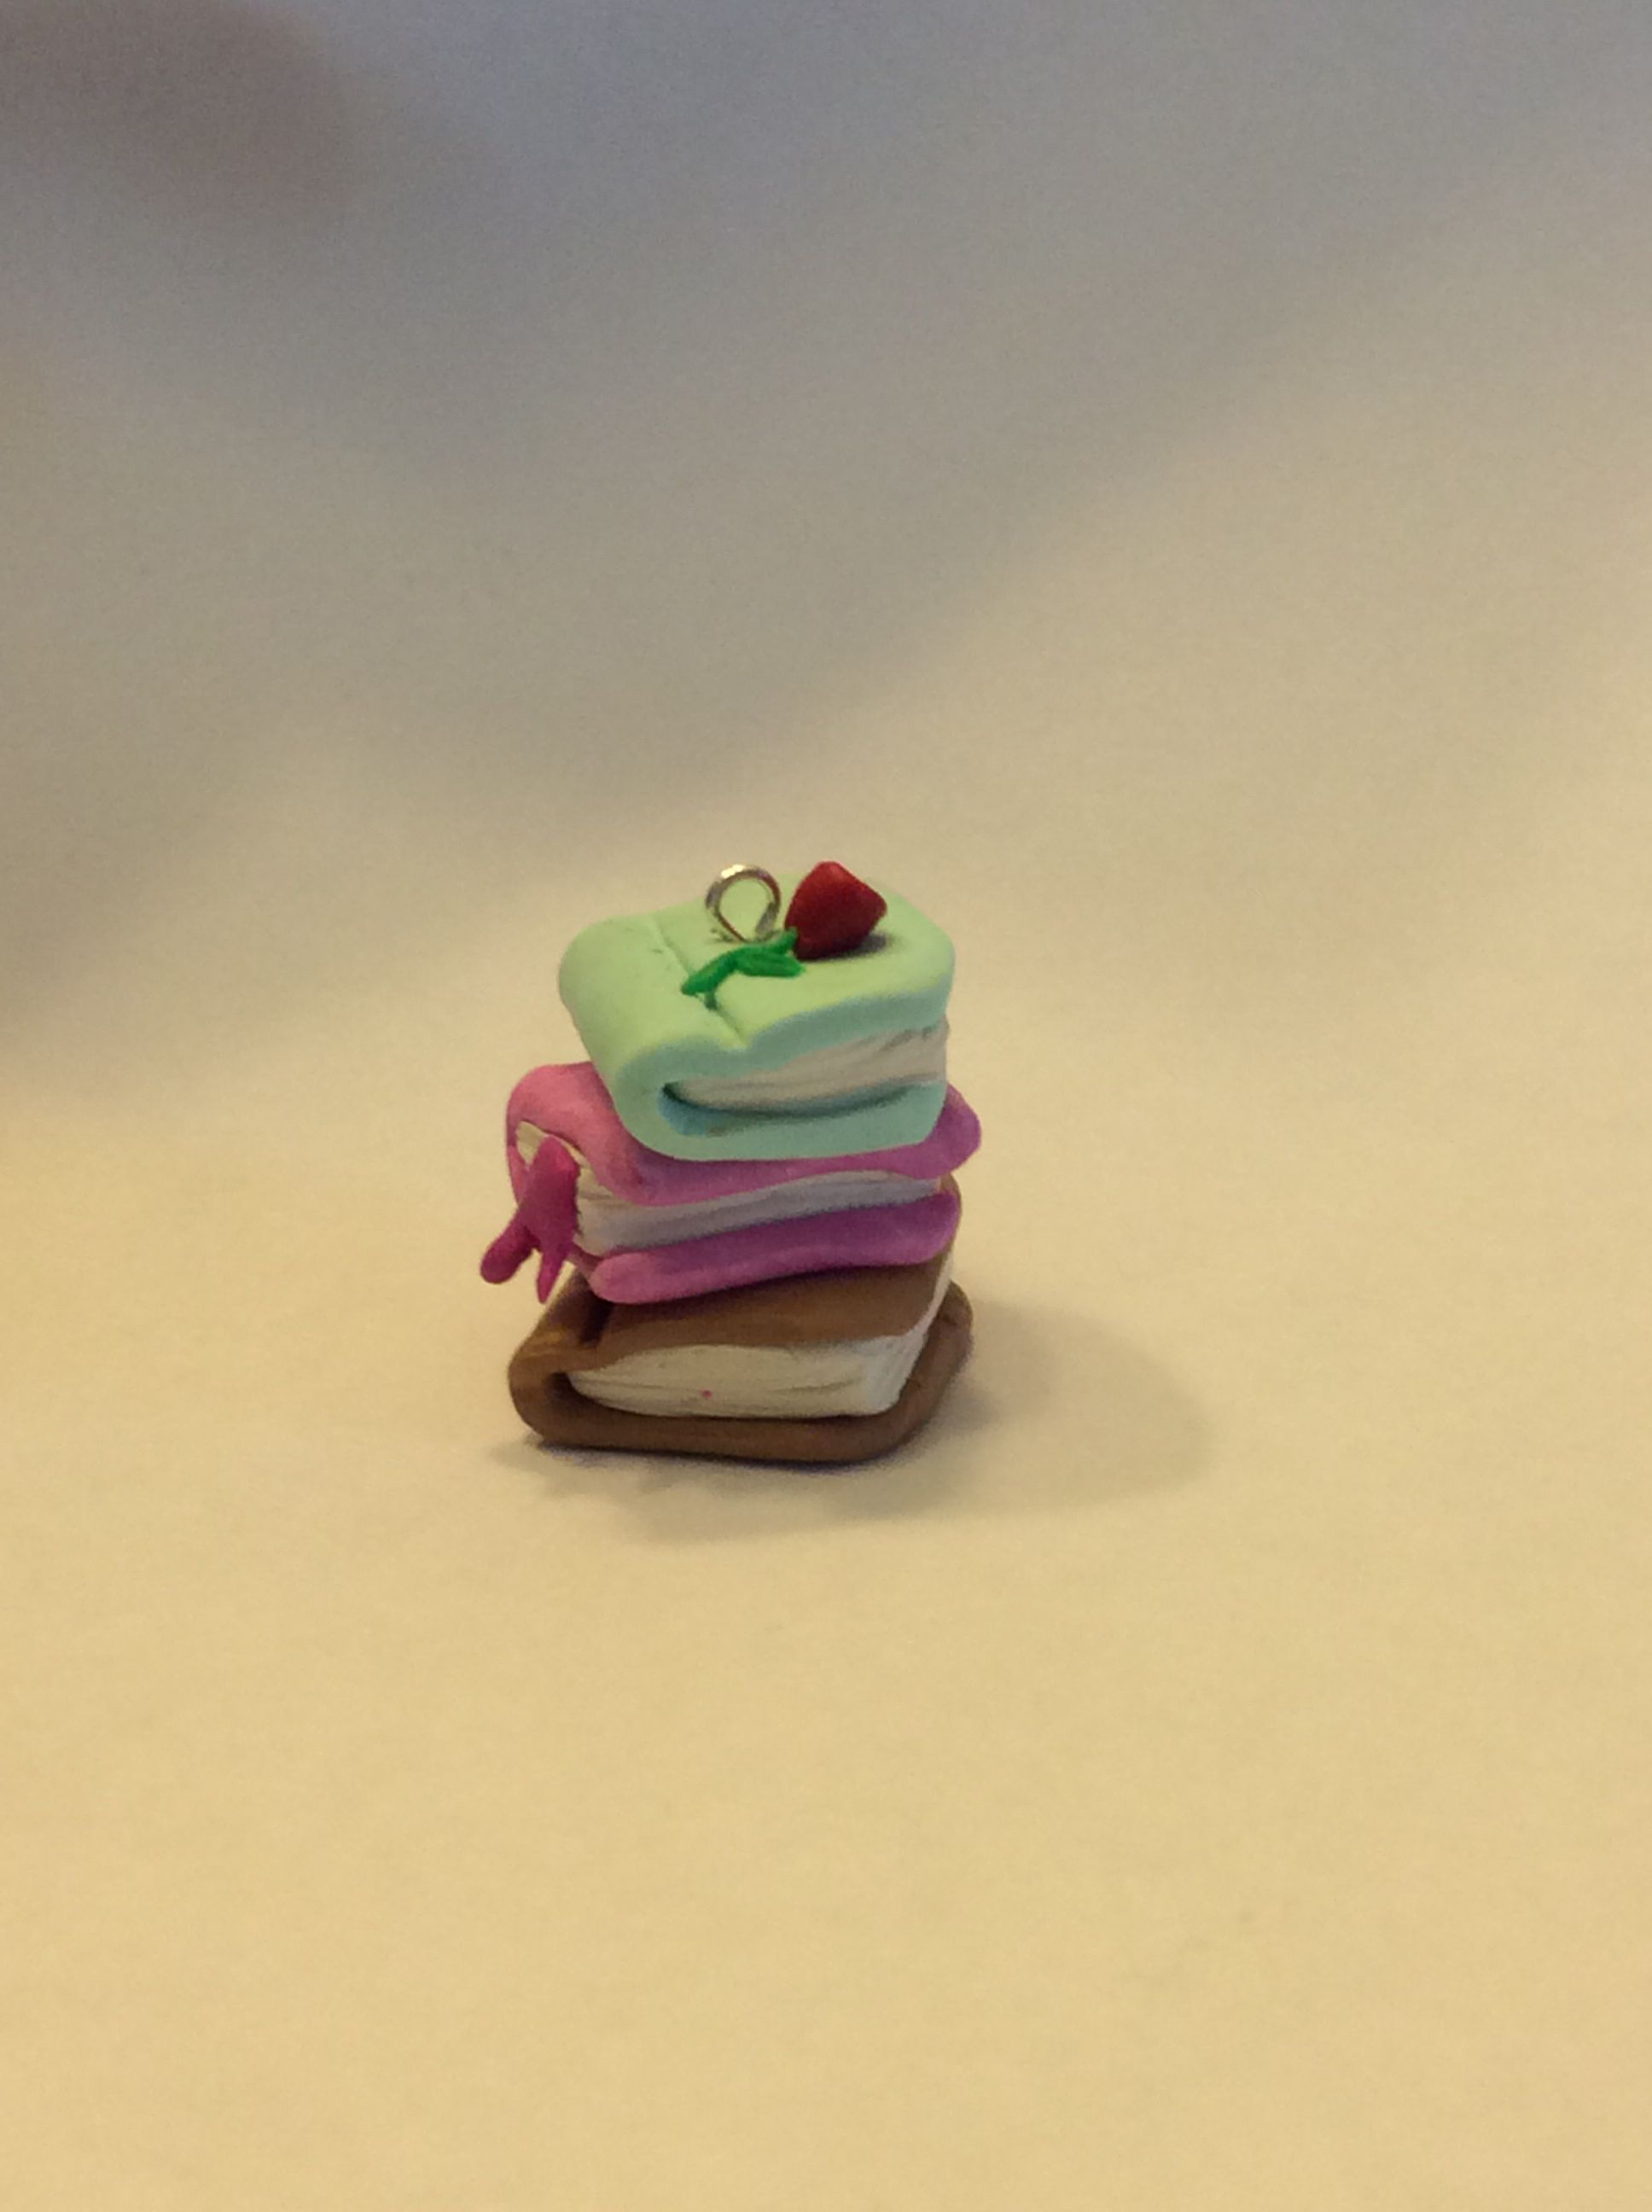 Polymer clay stack of books with a flower on top.